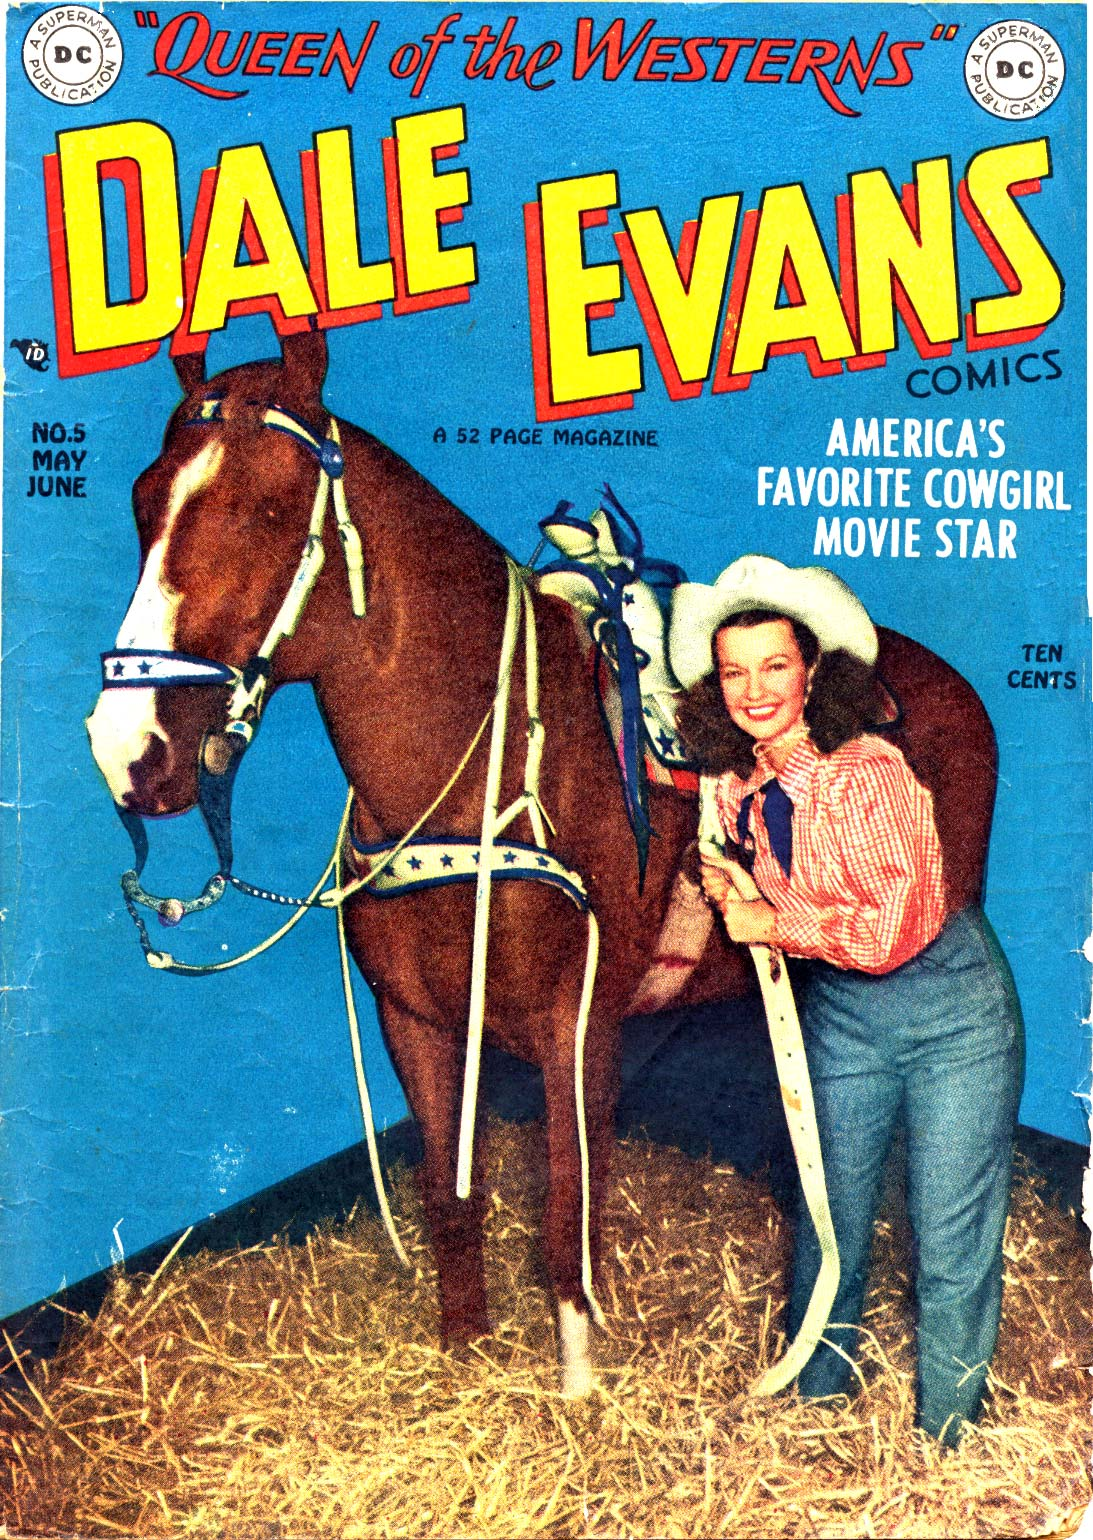 dale evans costumedale evans horse, dale evans rogers, dale evans parkway, dale evans book, dale evans and roy rogers, dale evans songs, dale evans boxer, dale evans net worth, dale evans dds, dale evans biography, dale evans images, dale evans happy trails, dale evans park, dale evans buttermilk, dale evans restaurant, dale evans costume, dale evans dog name, dale evans quotes, dale evans pictures, dale evans bank